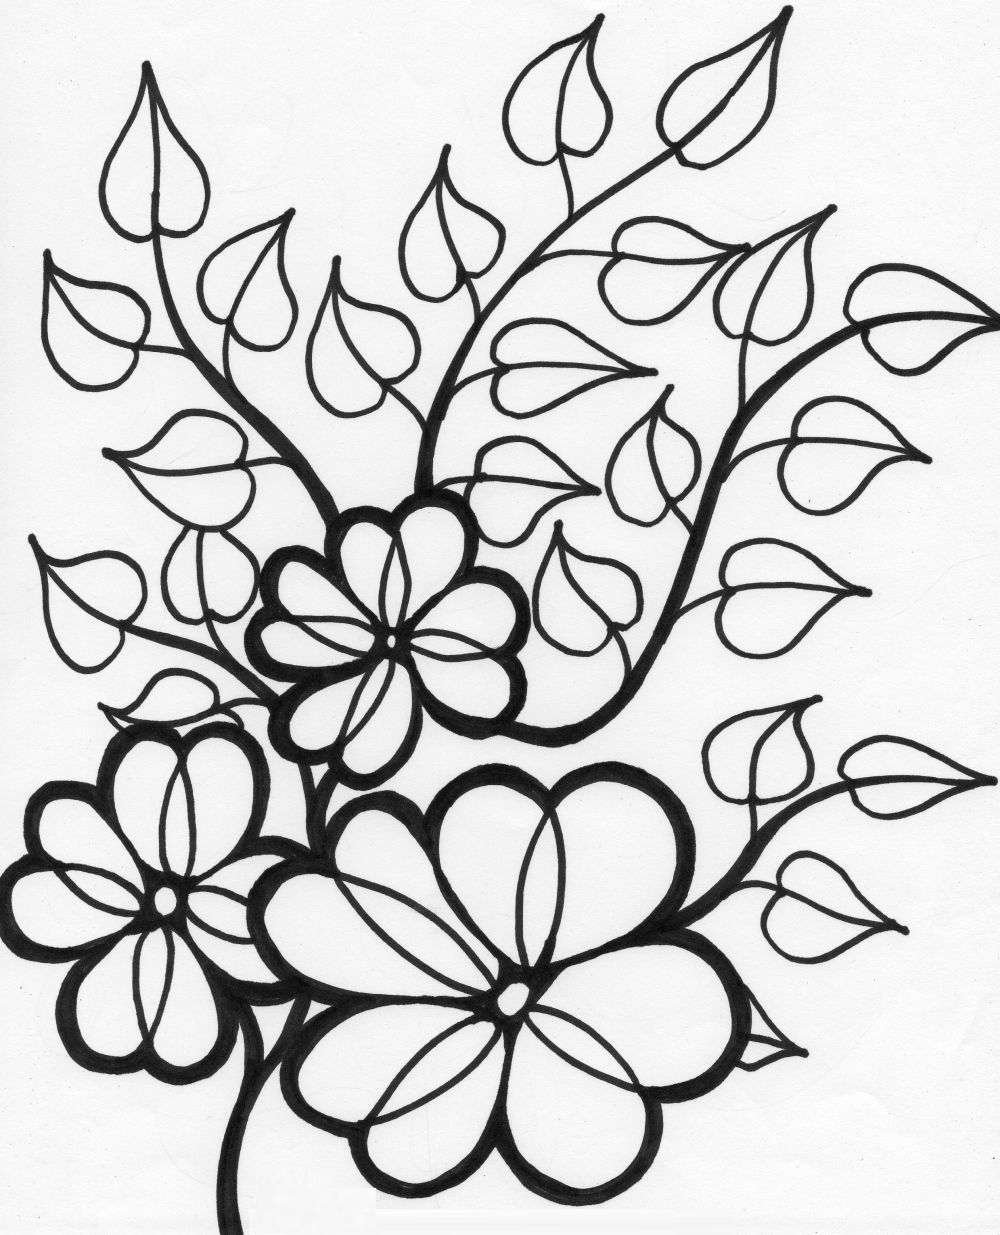 printable flowers to color free printable flower coloring pages for kids best printable color flowers to